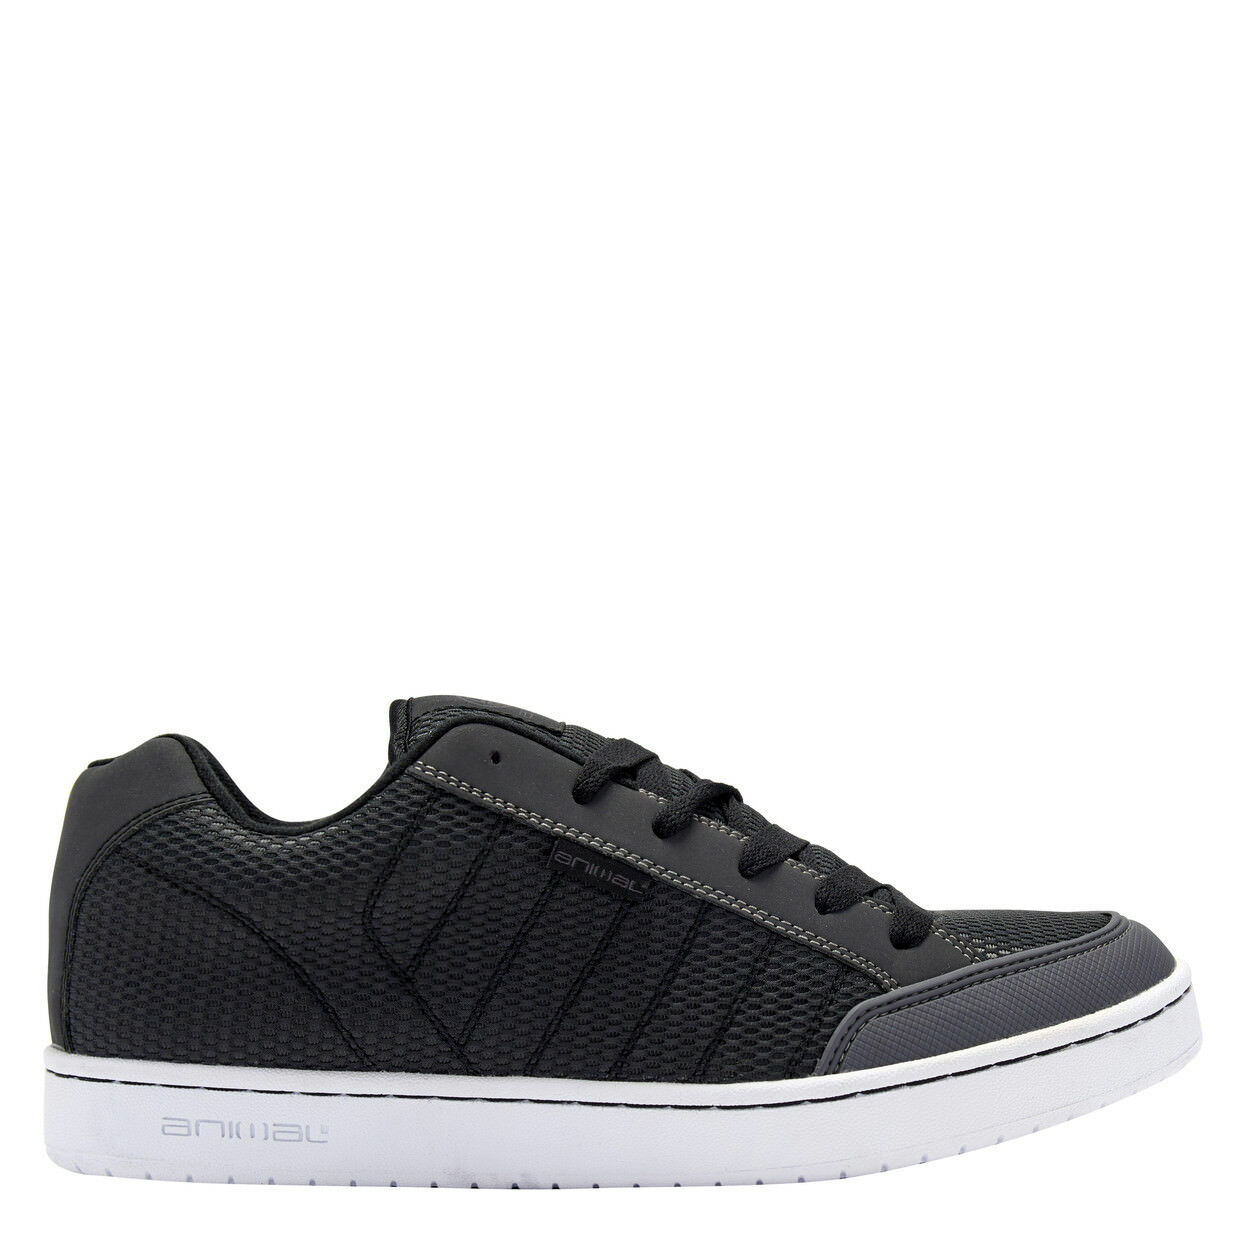 ANIMAL PADDED MENS TRAINERS.BOXED MITCH GREY PADDED ANIMAL SKATE SHOES.RUBBER SOLE 8S 21 L63 d6eacd